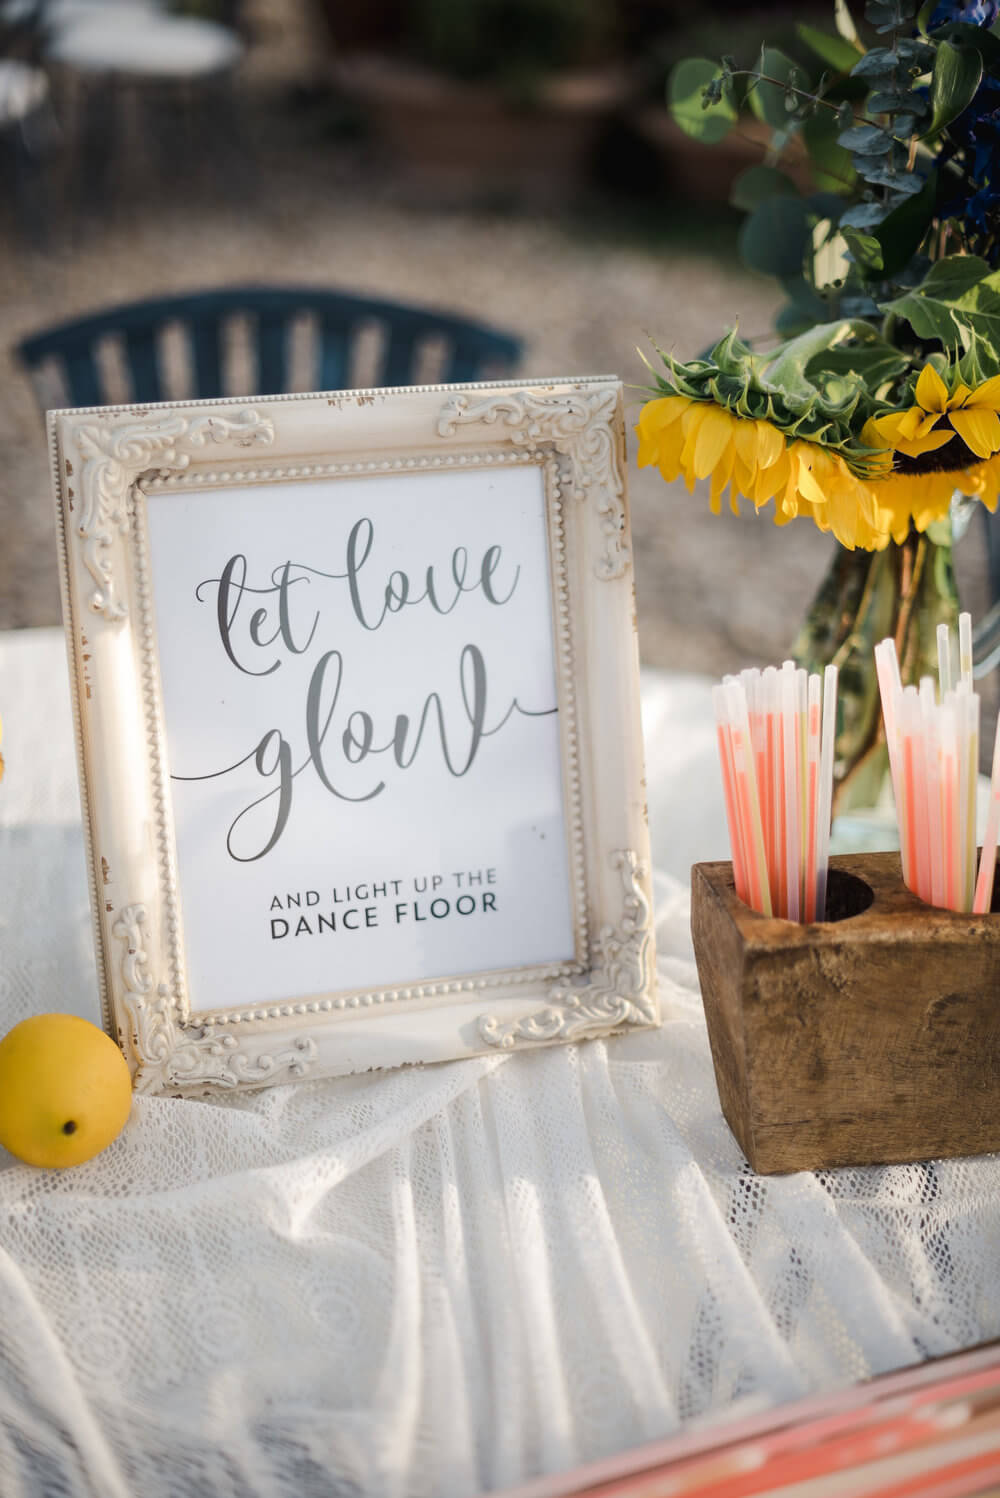 French country wedding inspiration table styled with glow sticks and props for the dance floor.